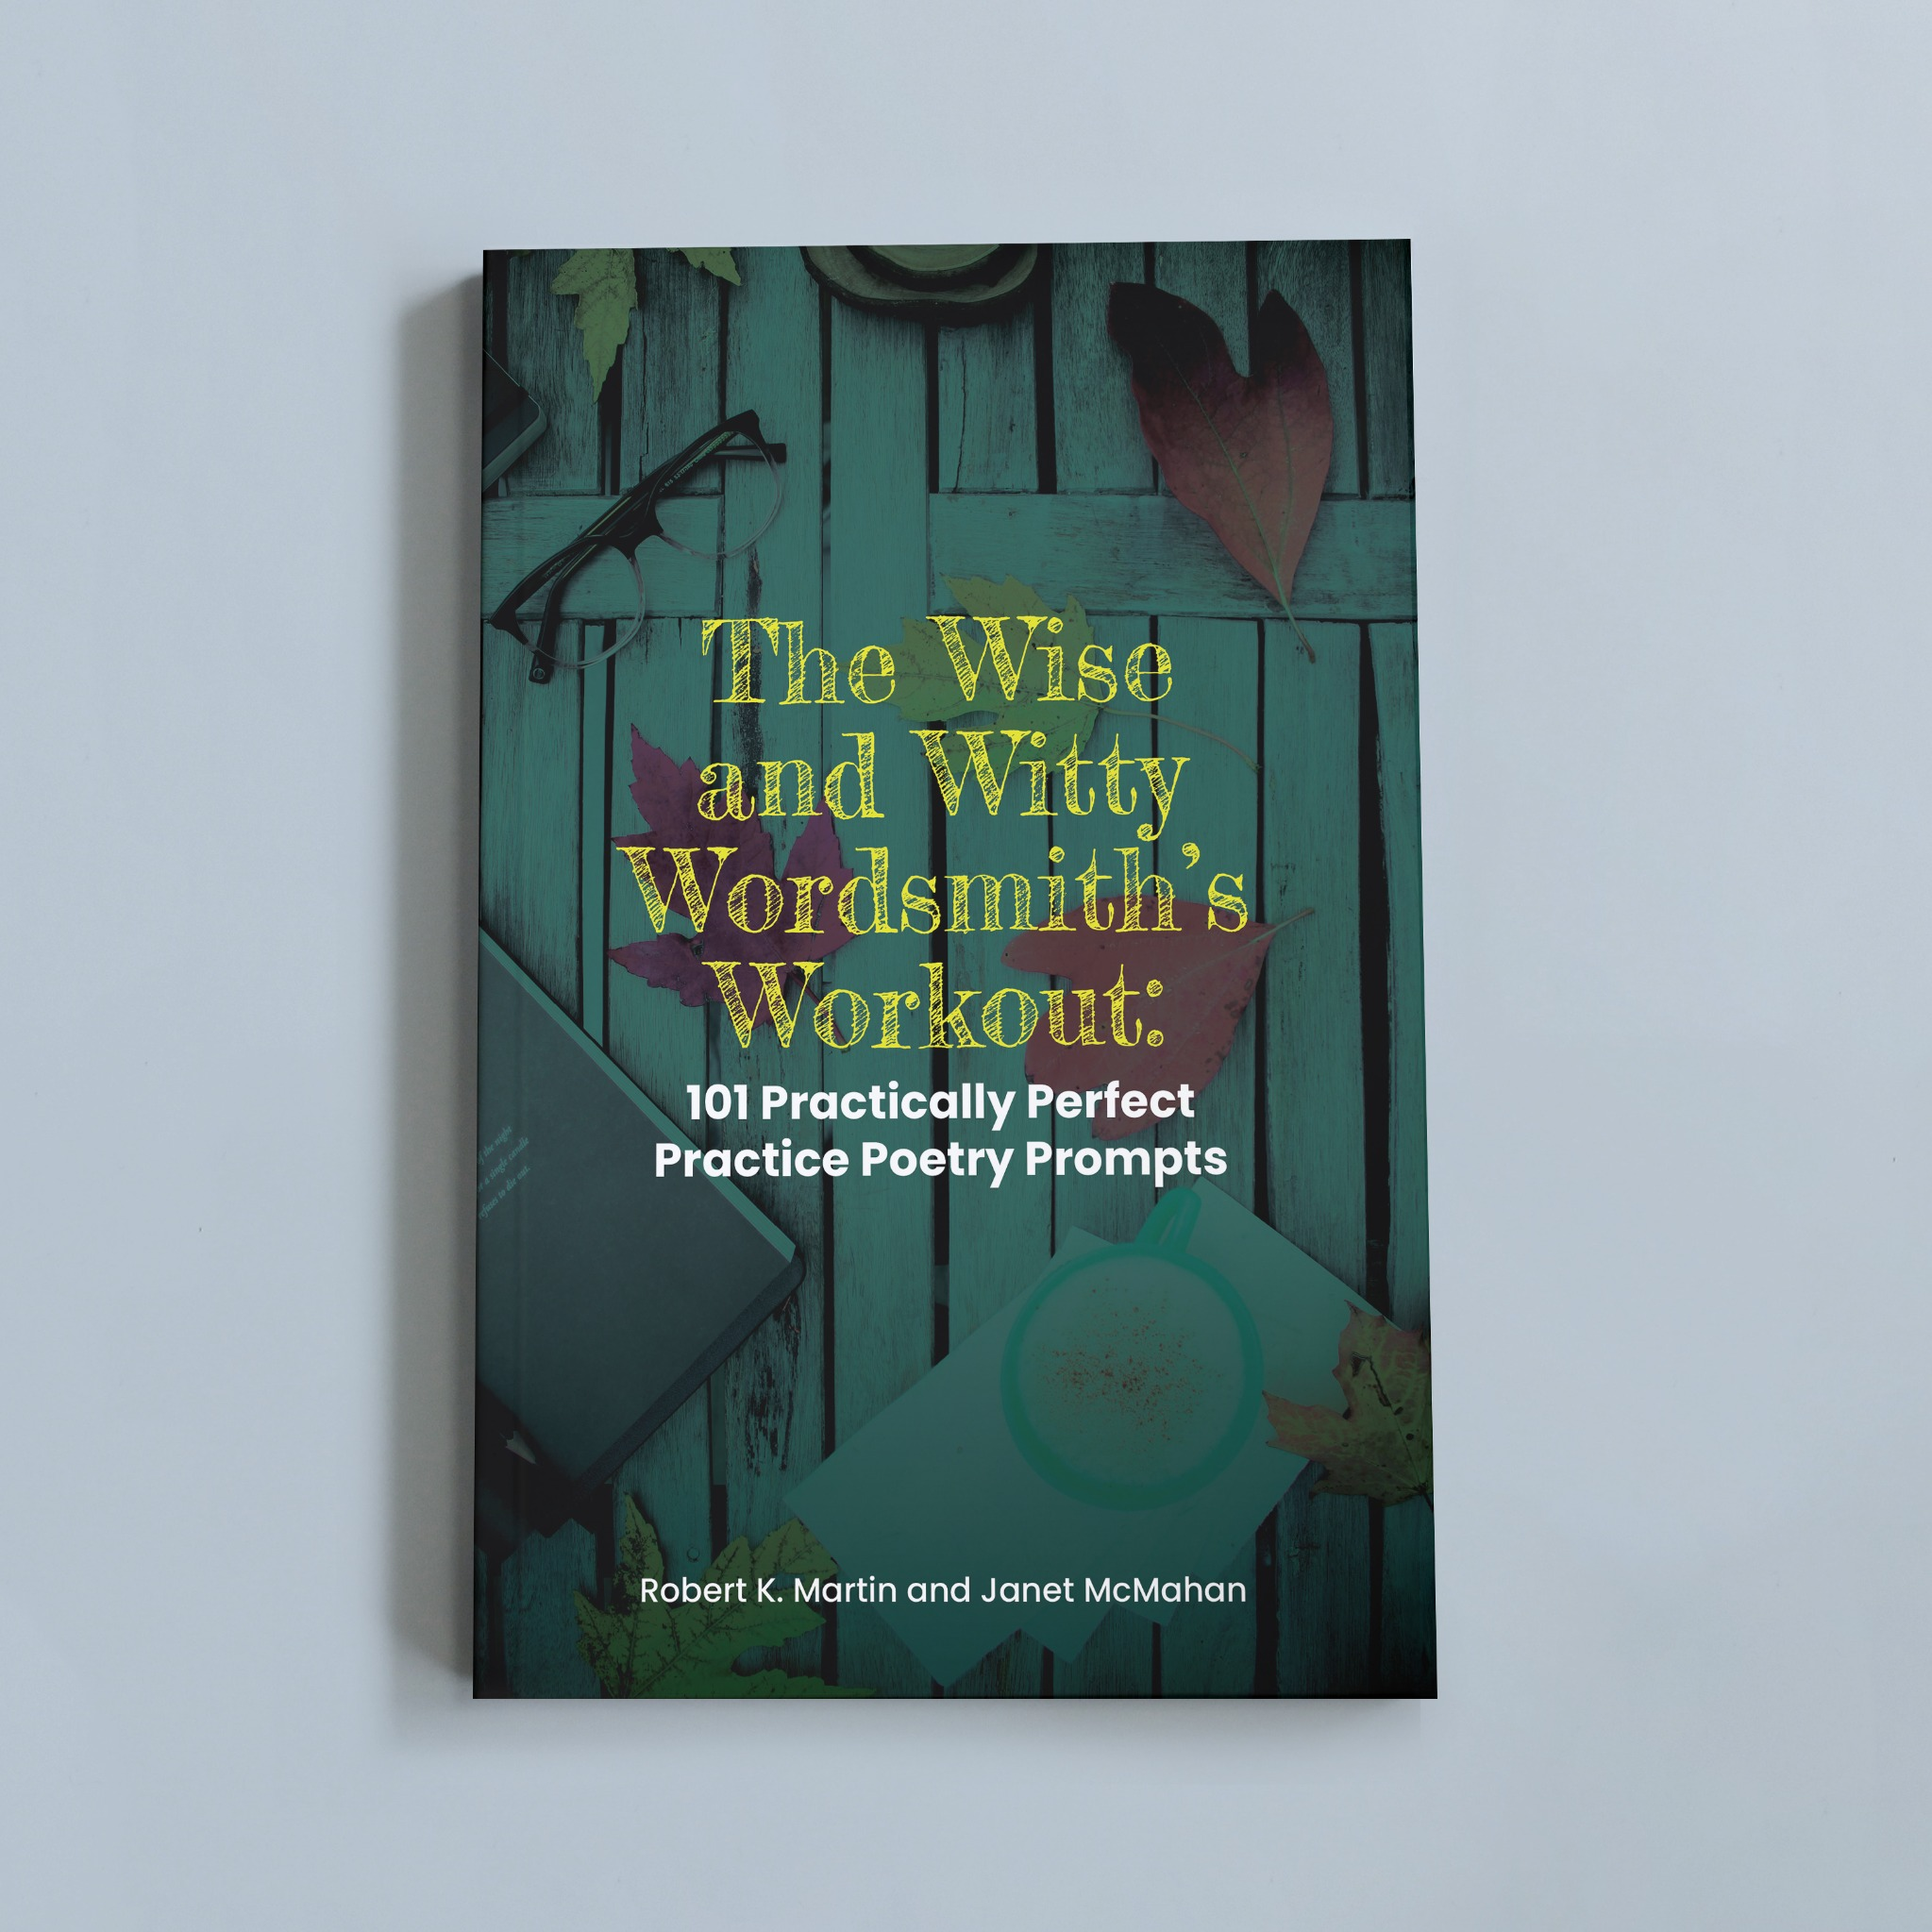 The Wise and Witty Wordsmith's Workout: 101 Practically Perfect Poetry Prompts (P)